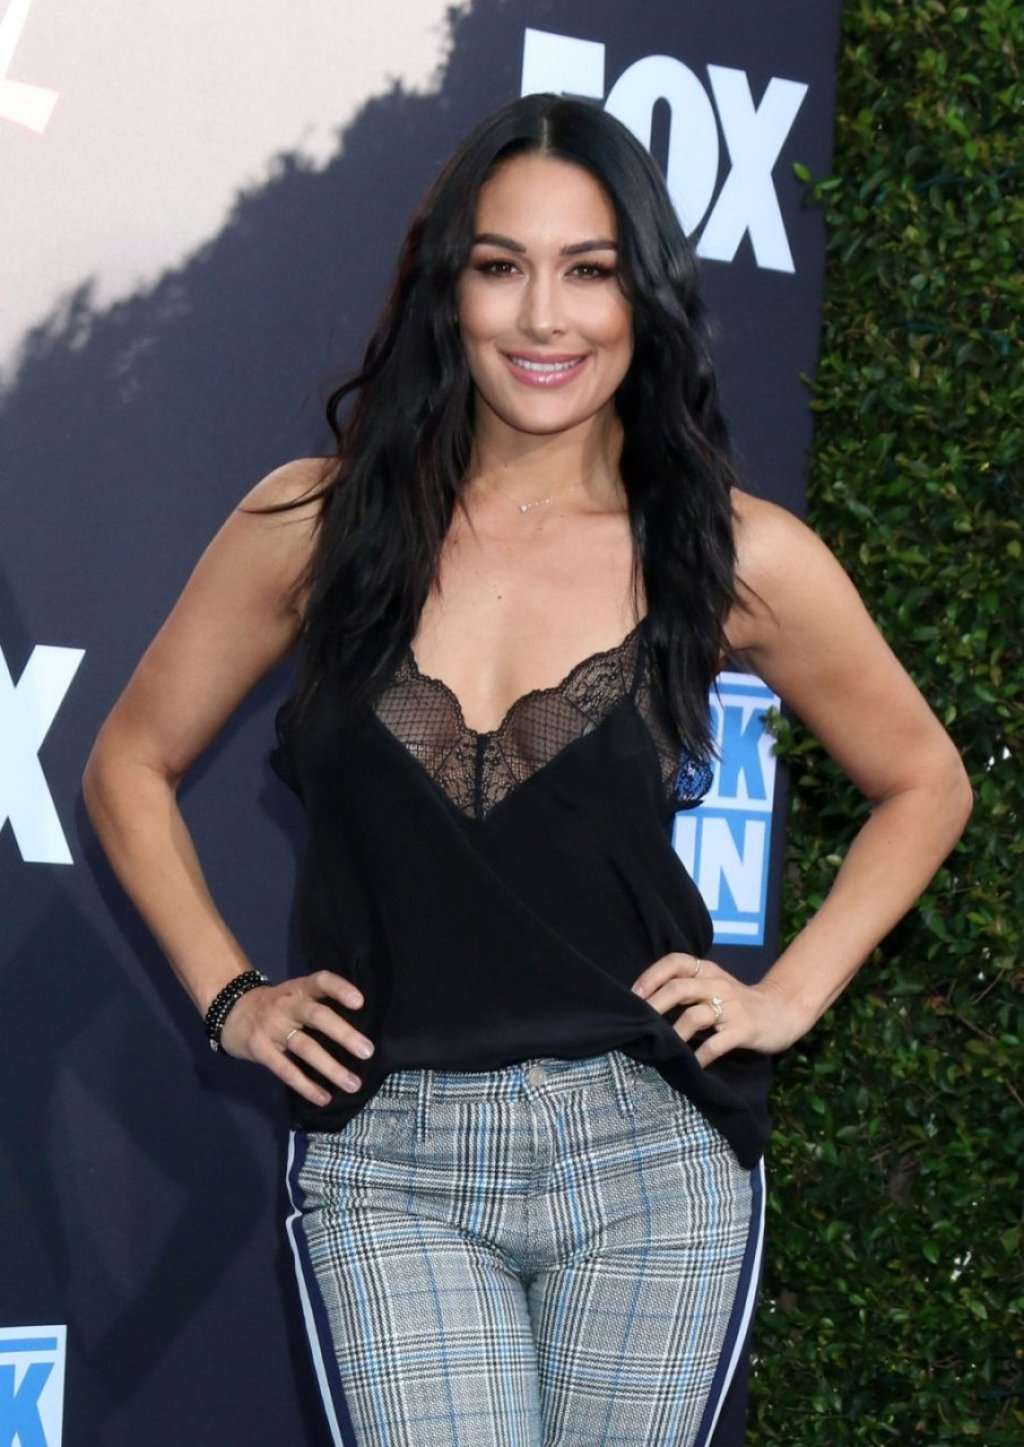 Brie Bella Sexy (70 Photos)